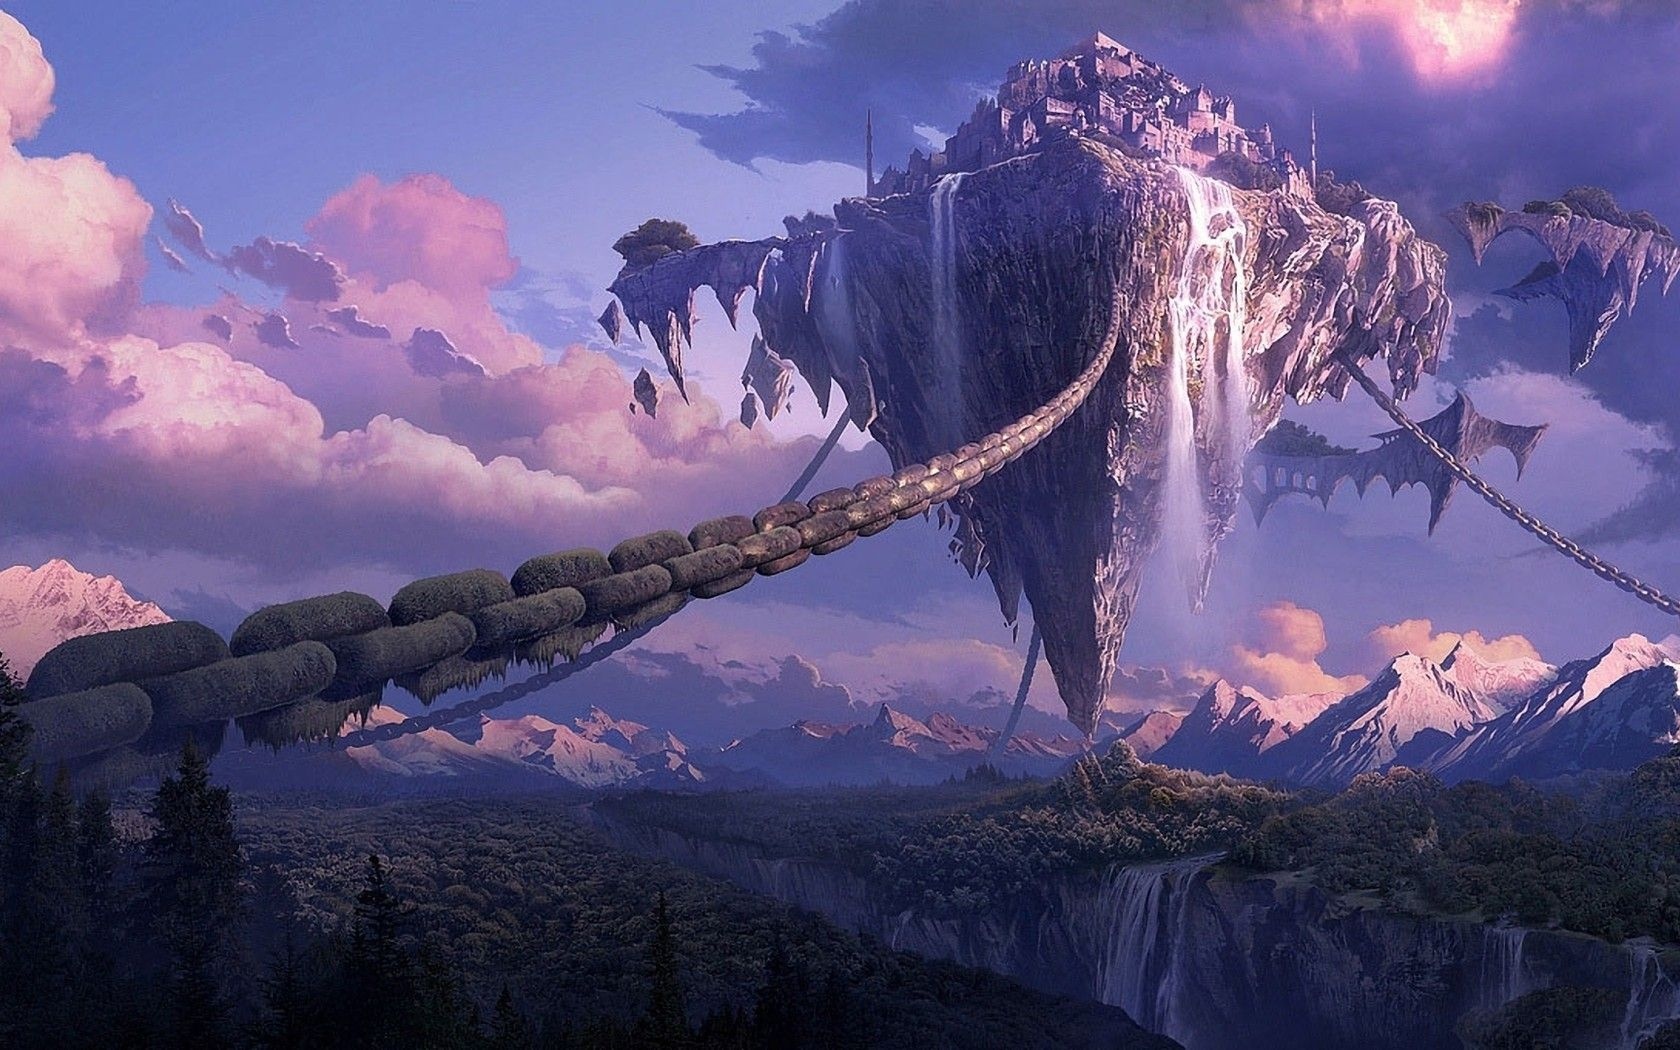 Hd Wallpapers Desktop High Definition Wallpapers Fantasy